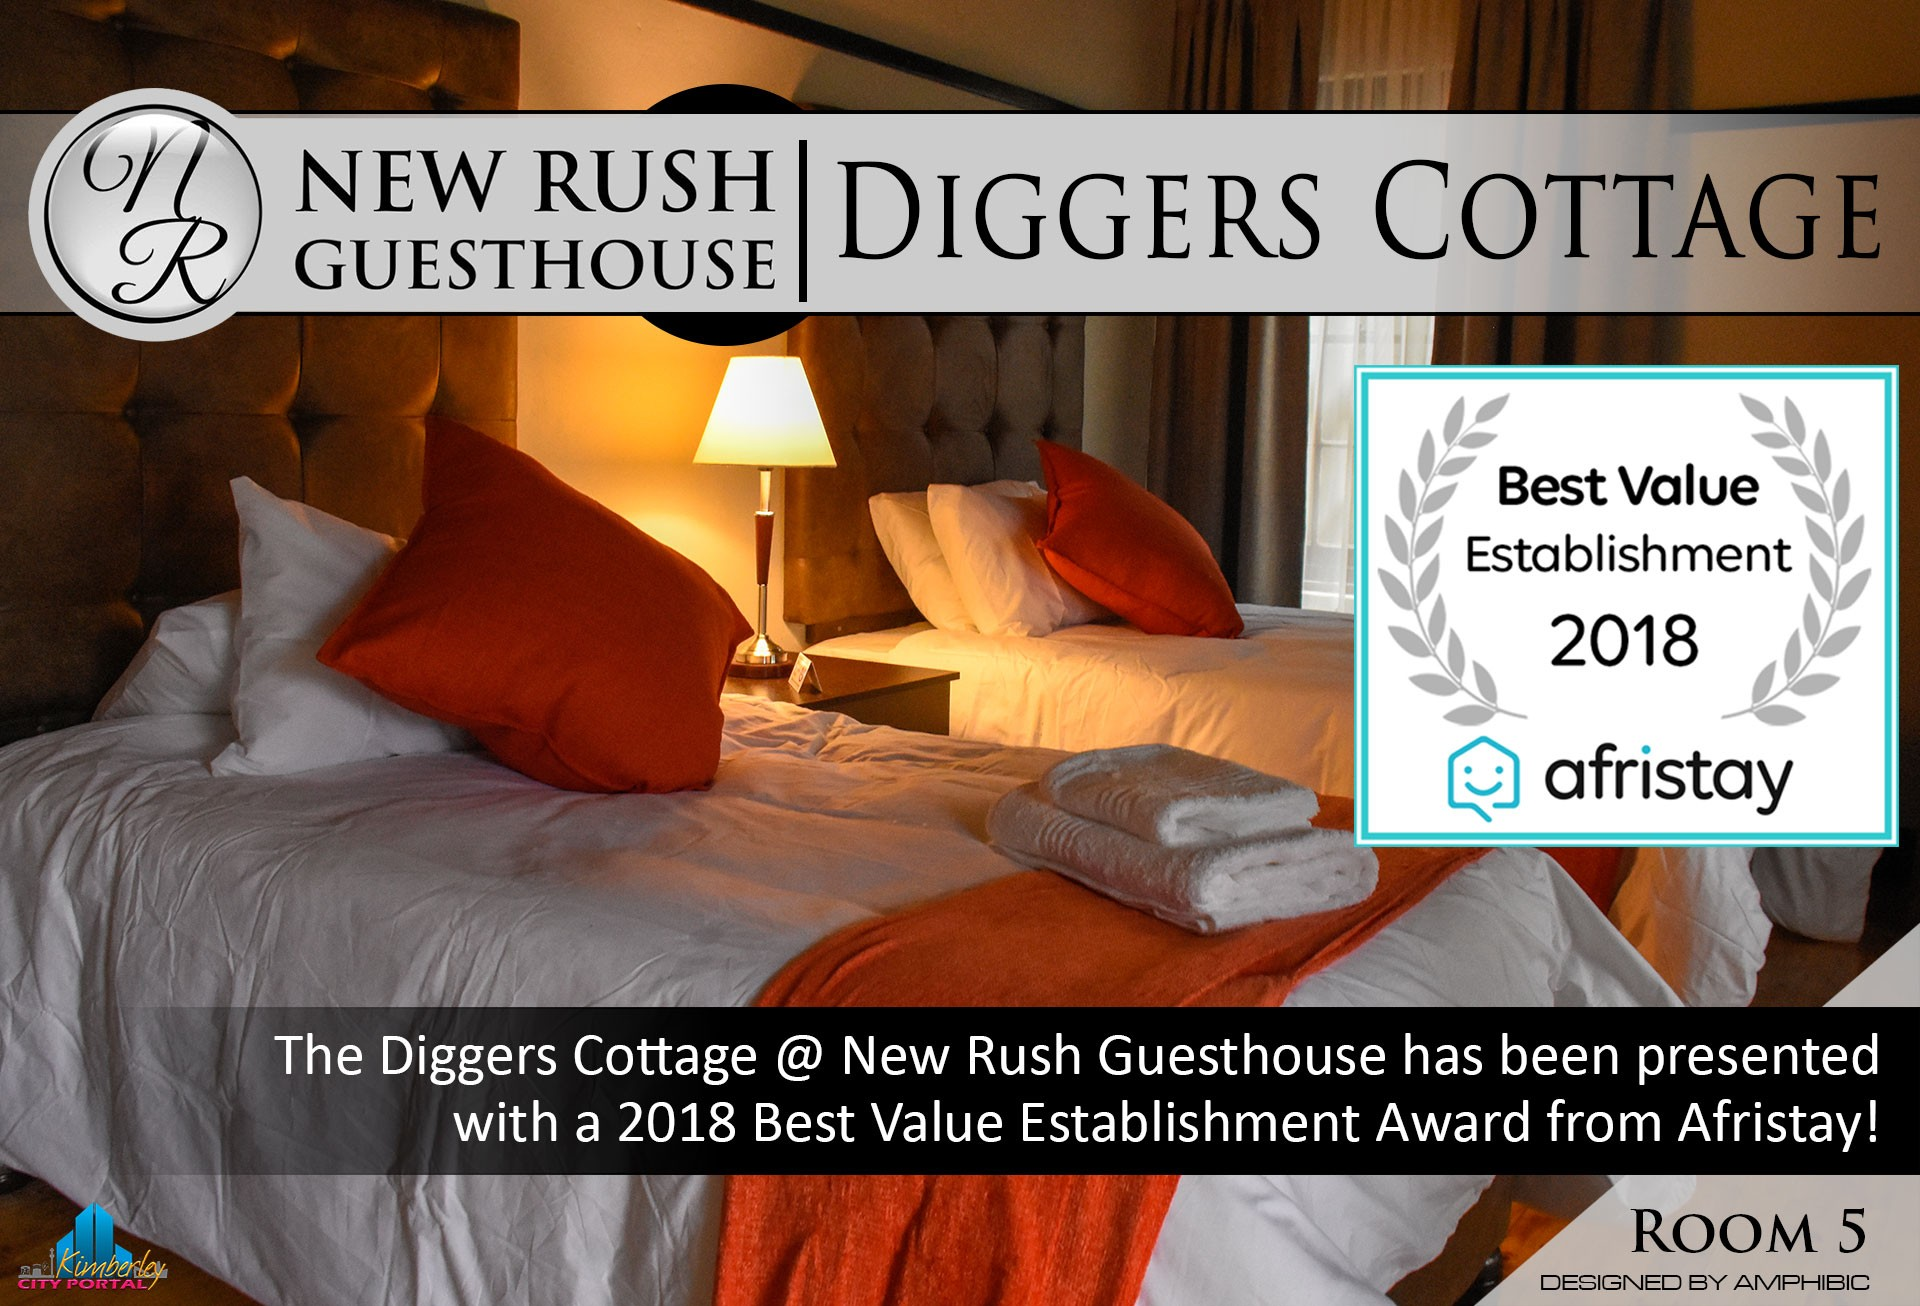 Diggers Cottage - Room 5: New Rush Guesthouse, Kimberley Big Hole Complex